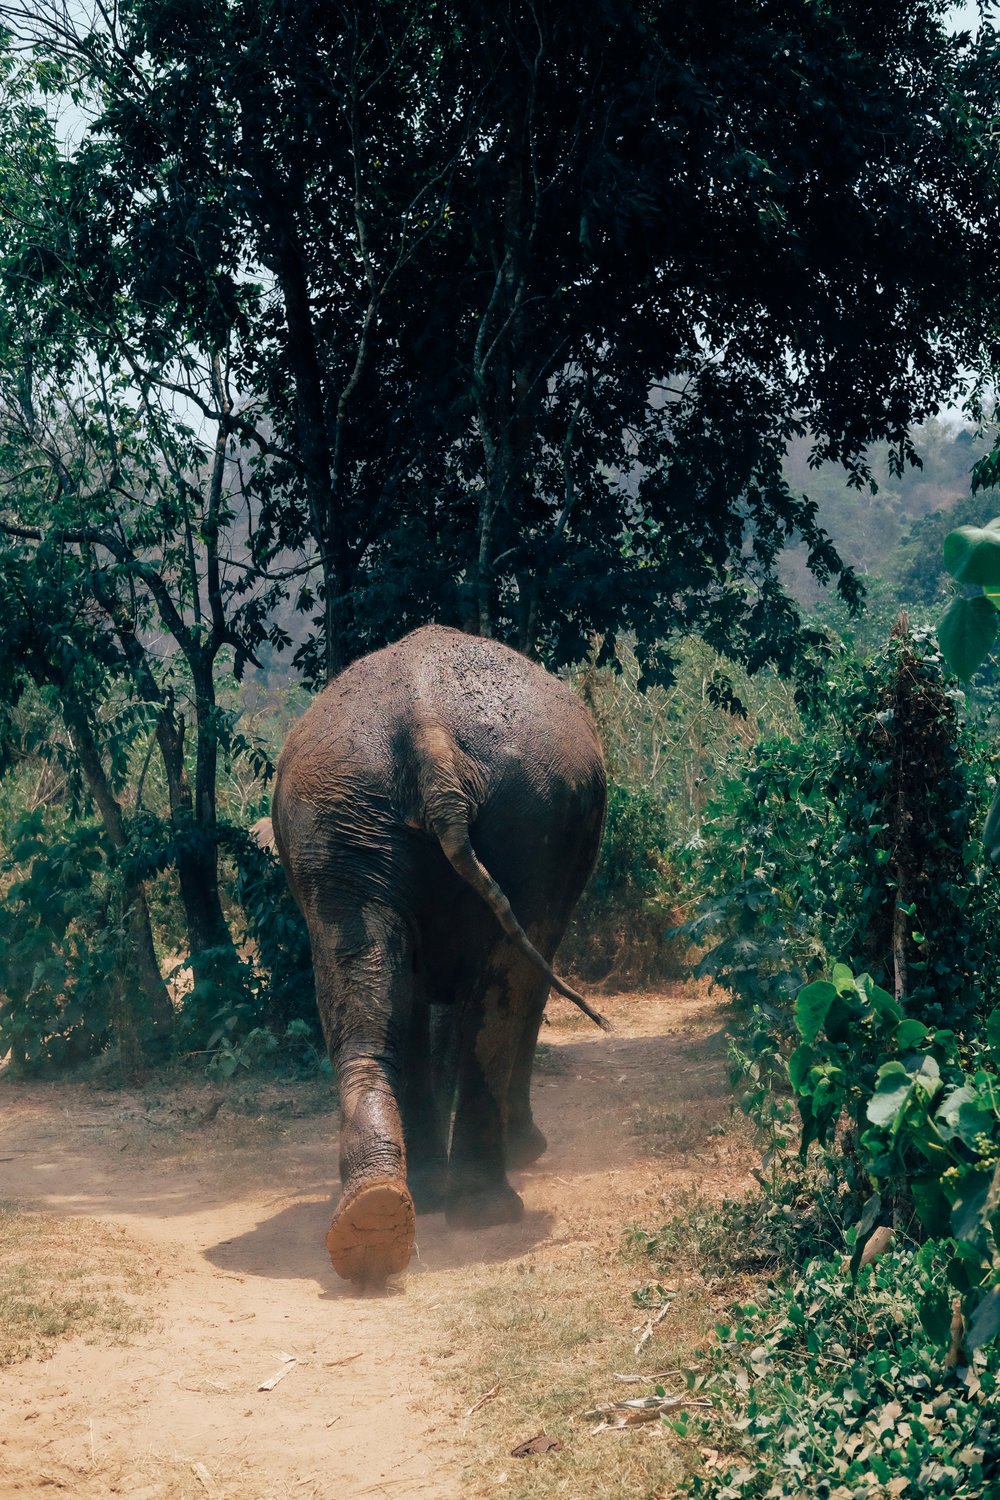 Walking with the elephants at the Elephant Nature Park